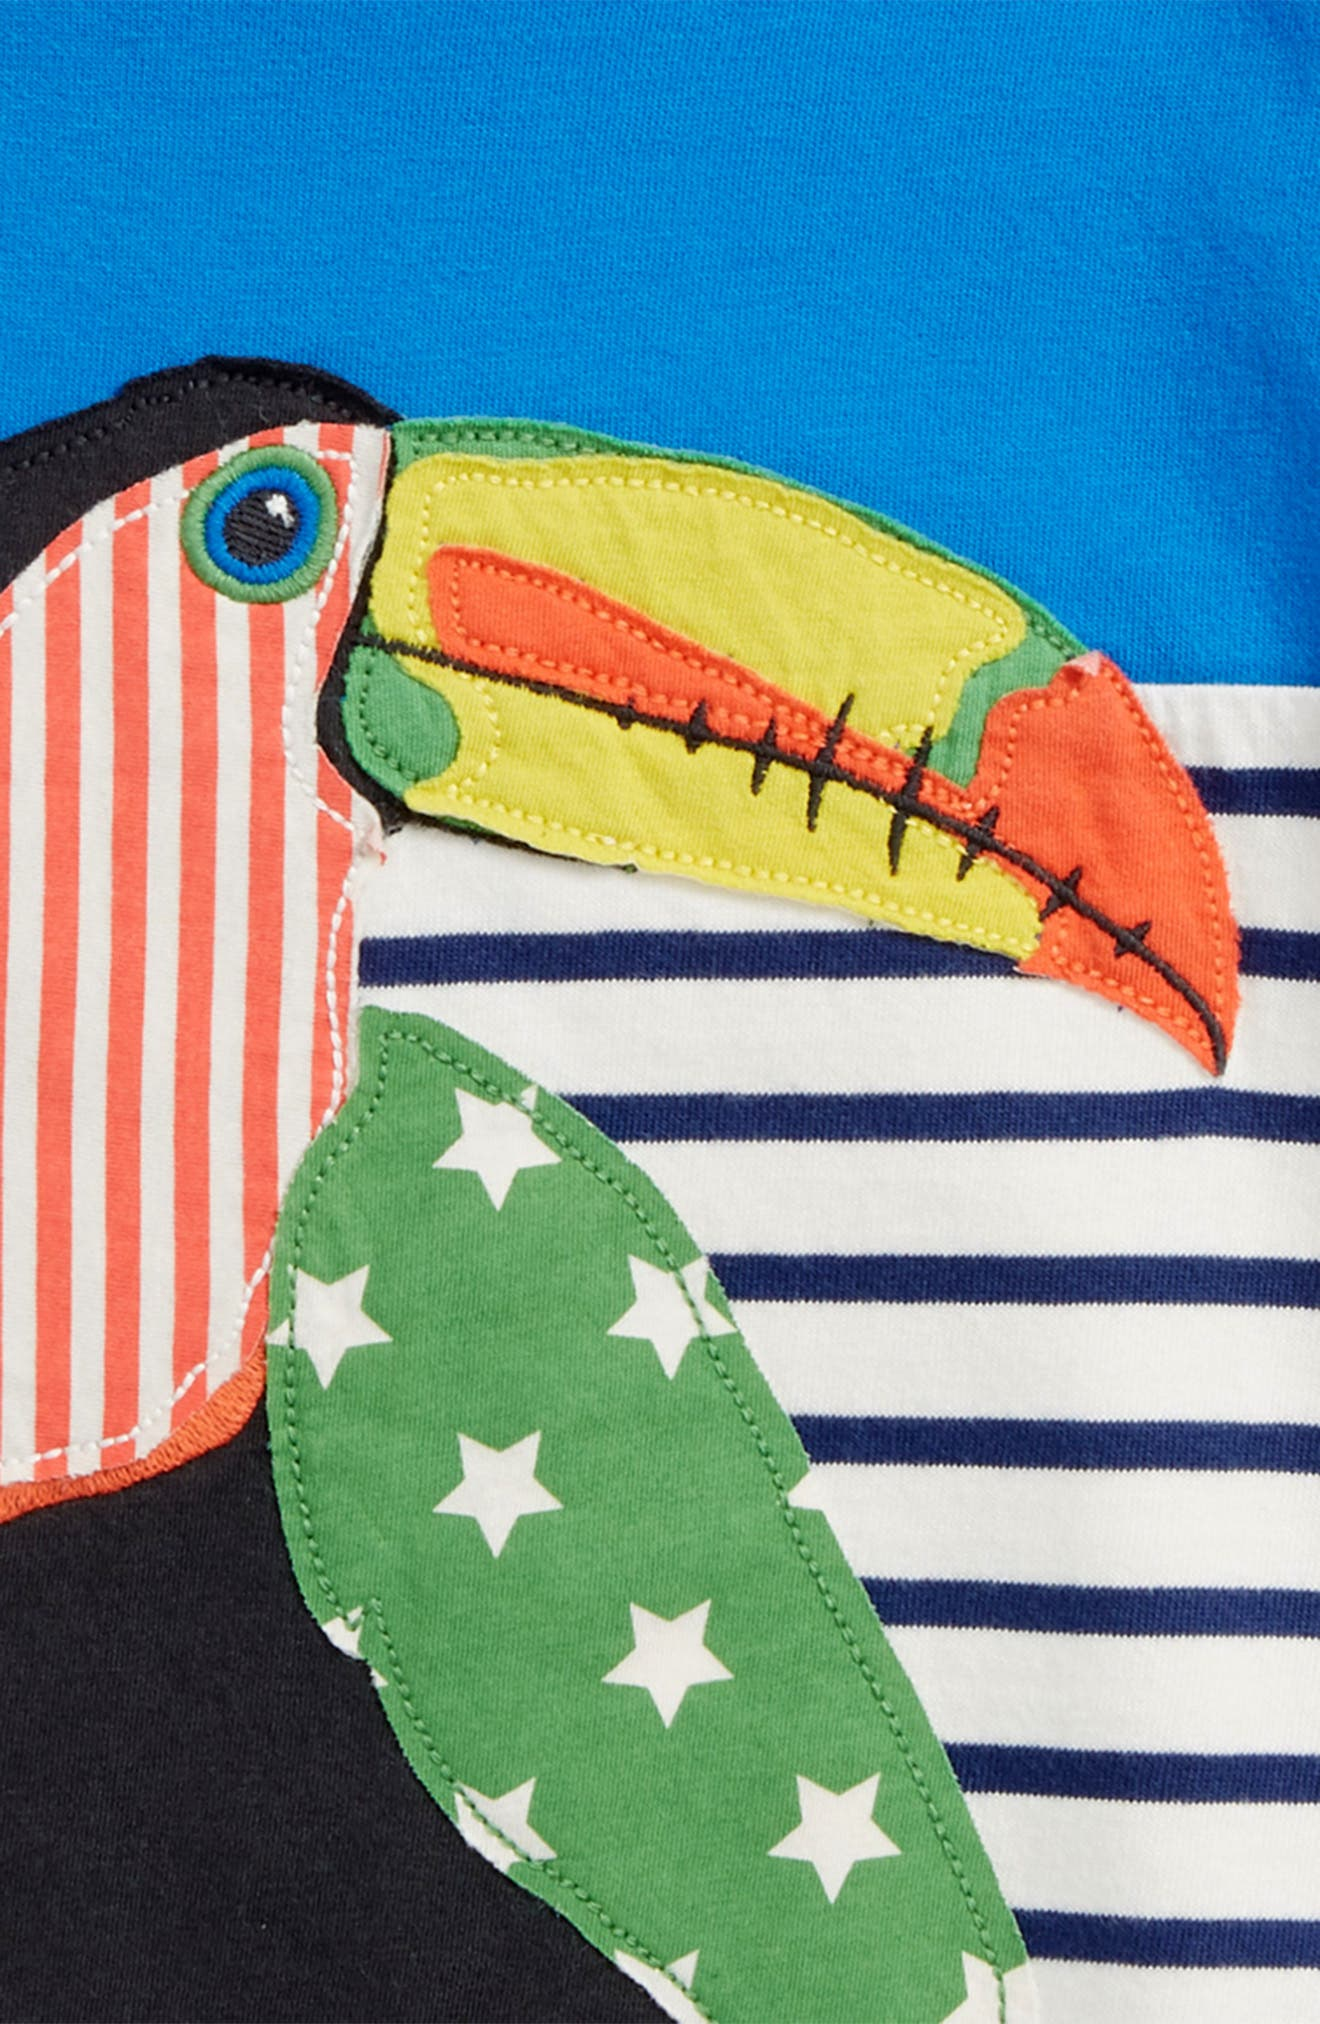 Toucan Stripe Appliqué T-Shirt,                             Alternate thumbnail 2, color,                             424